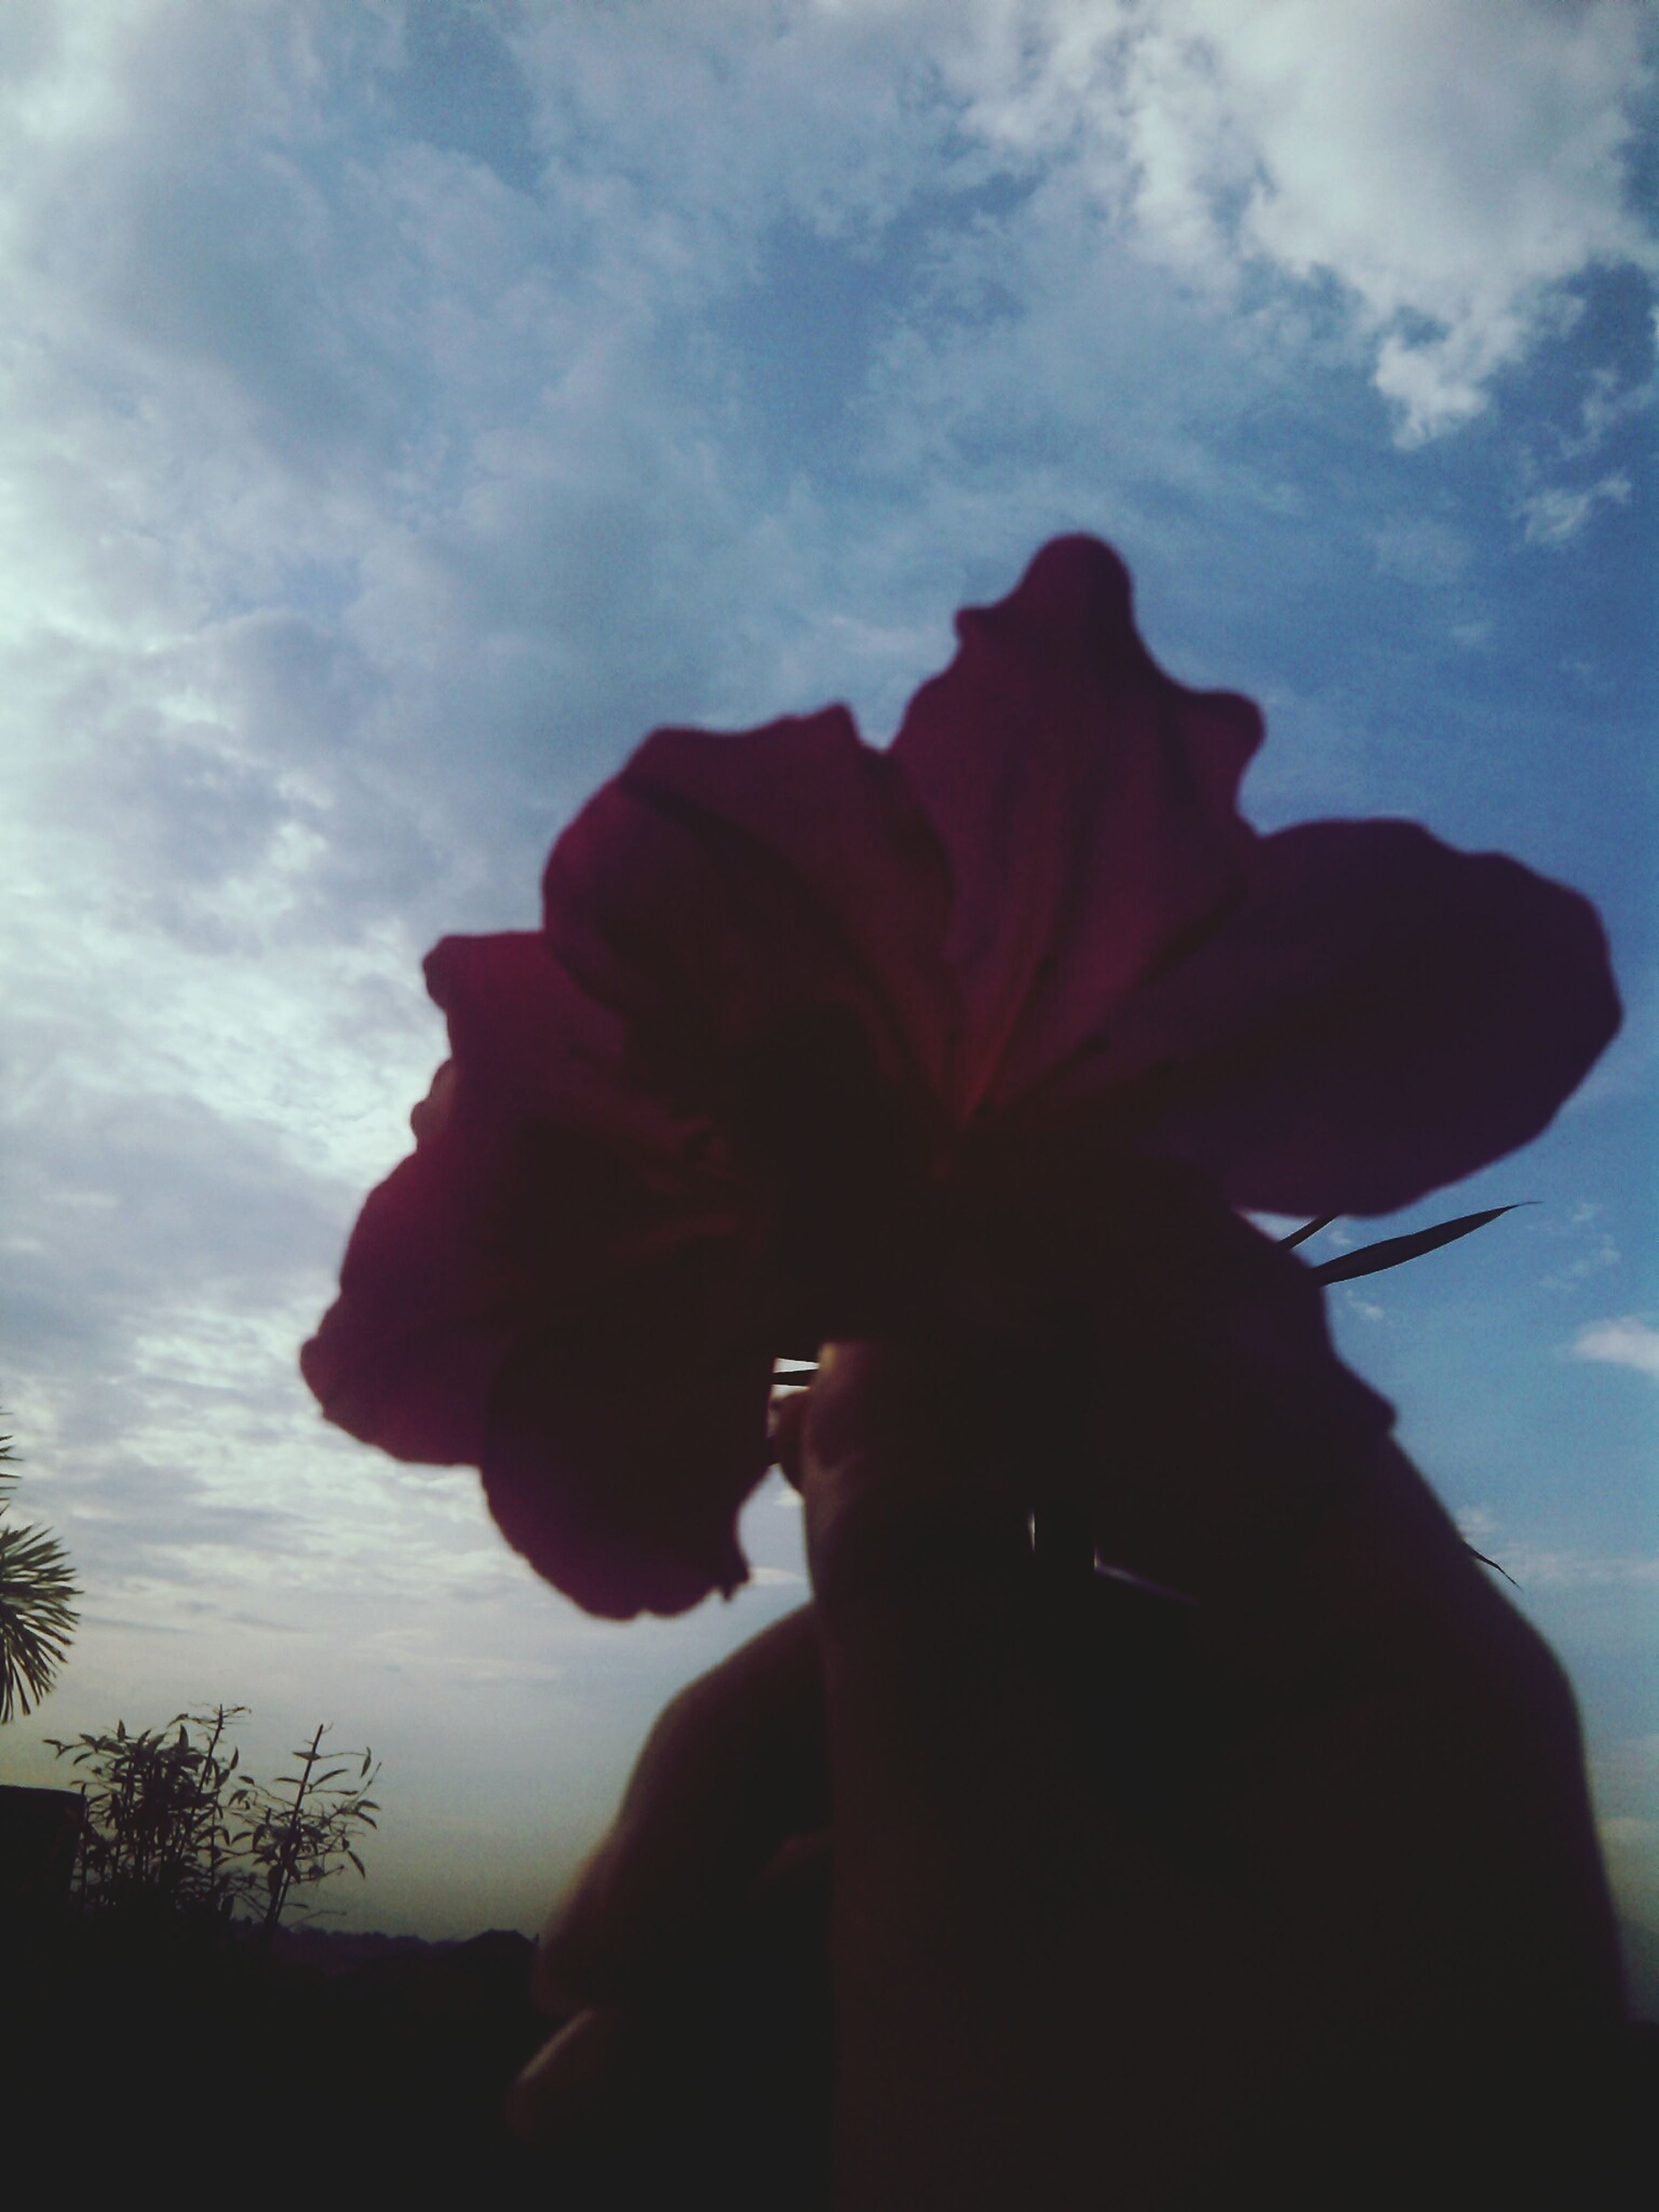 flower, sky, flower head, cloud - sky, silhouette, beauty in nature, petal, fragility, nature, cloud, growth, freshness, plant, one person, single flower, close-up, low angle view, outdoors, focus on foreground, sunlight